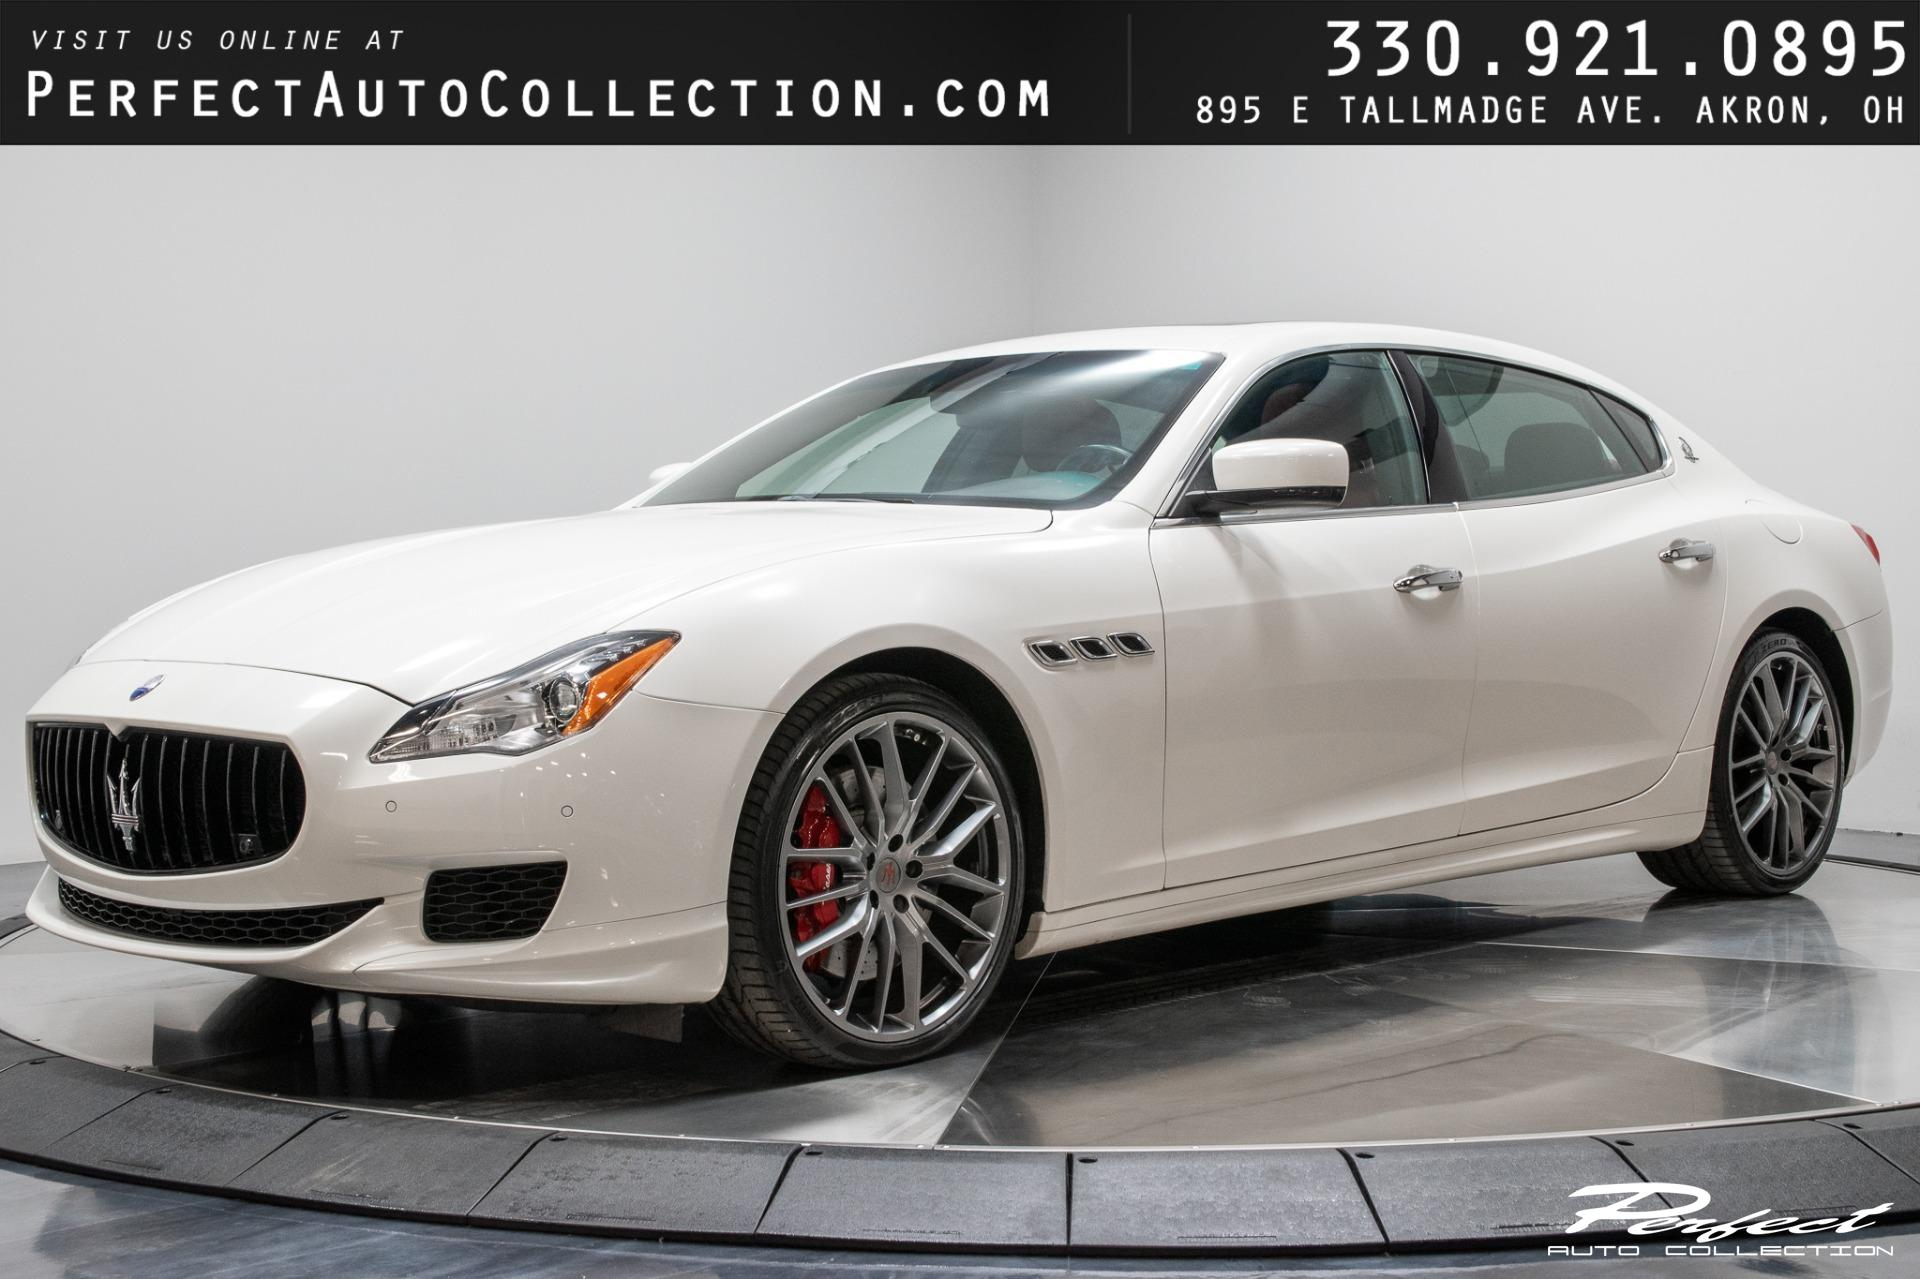 Used 2015 Maserati Quattroporte GTS for sale Sold at Perfect Auto Collection in Akron OH 44310 1